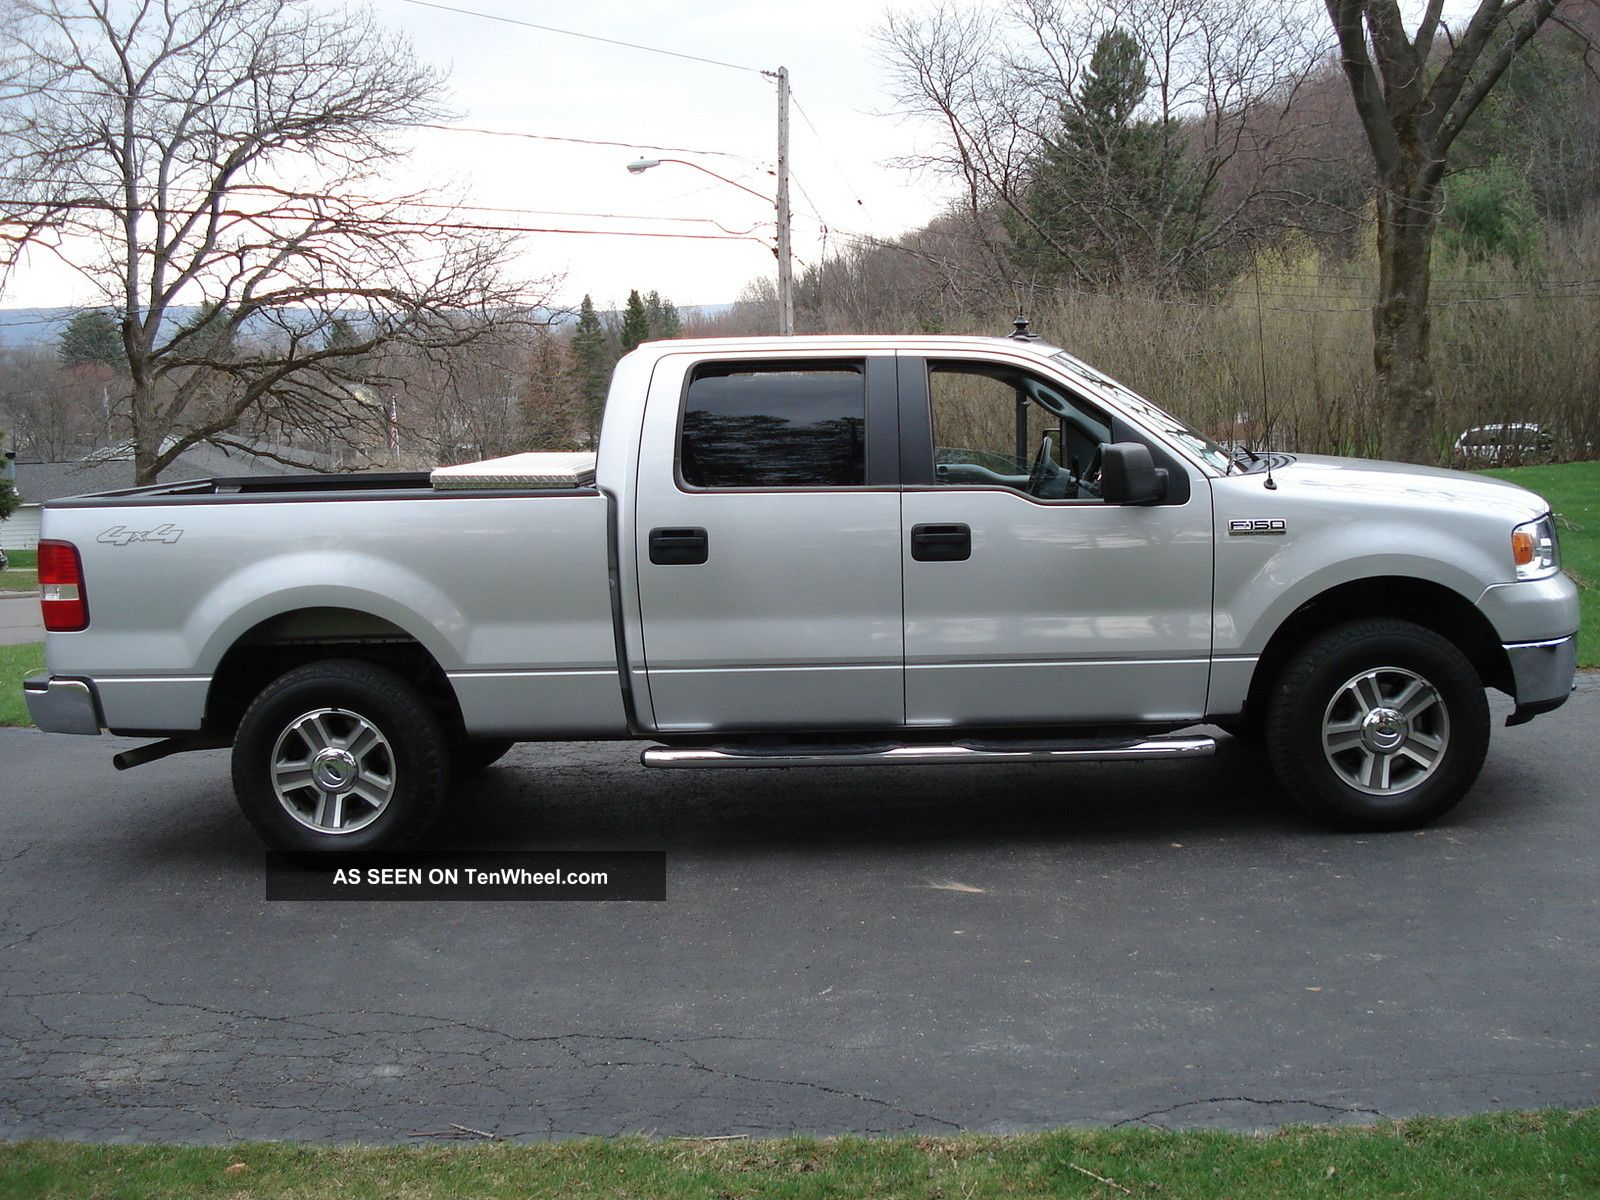 Ford XLT 2007 photo - 4